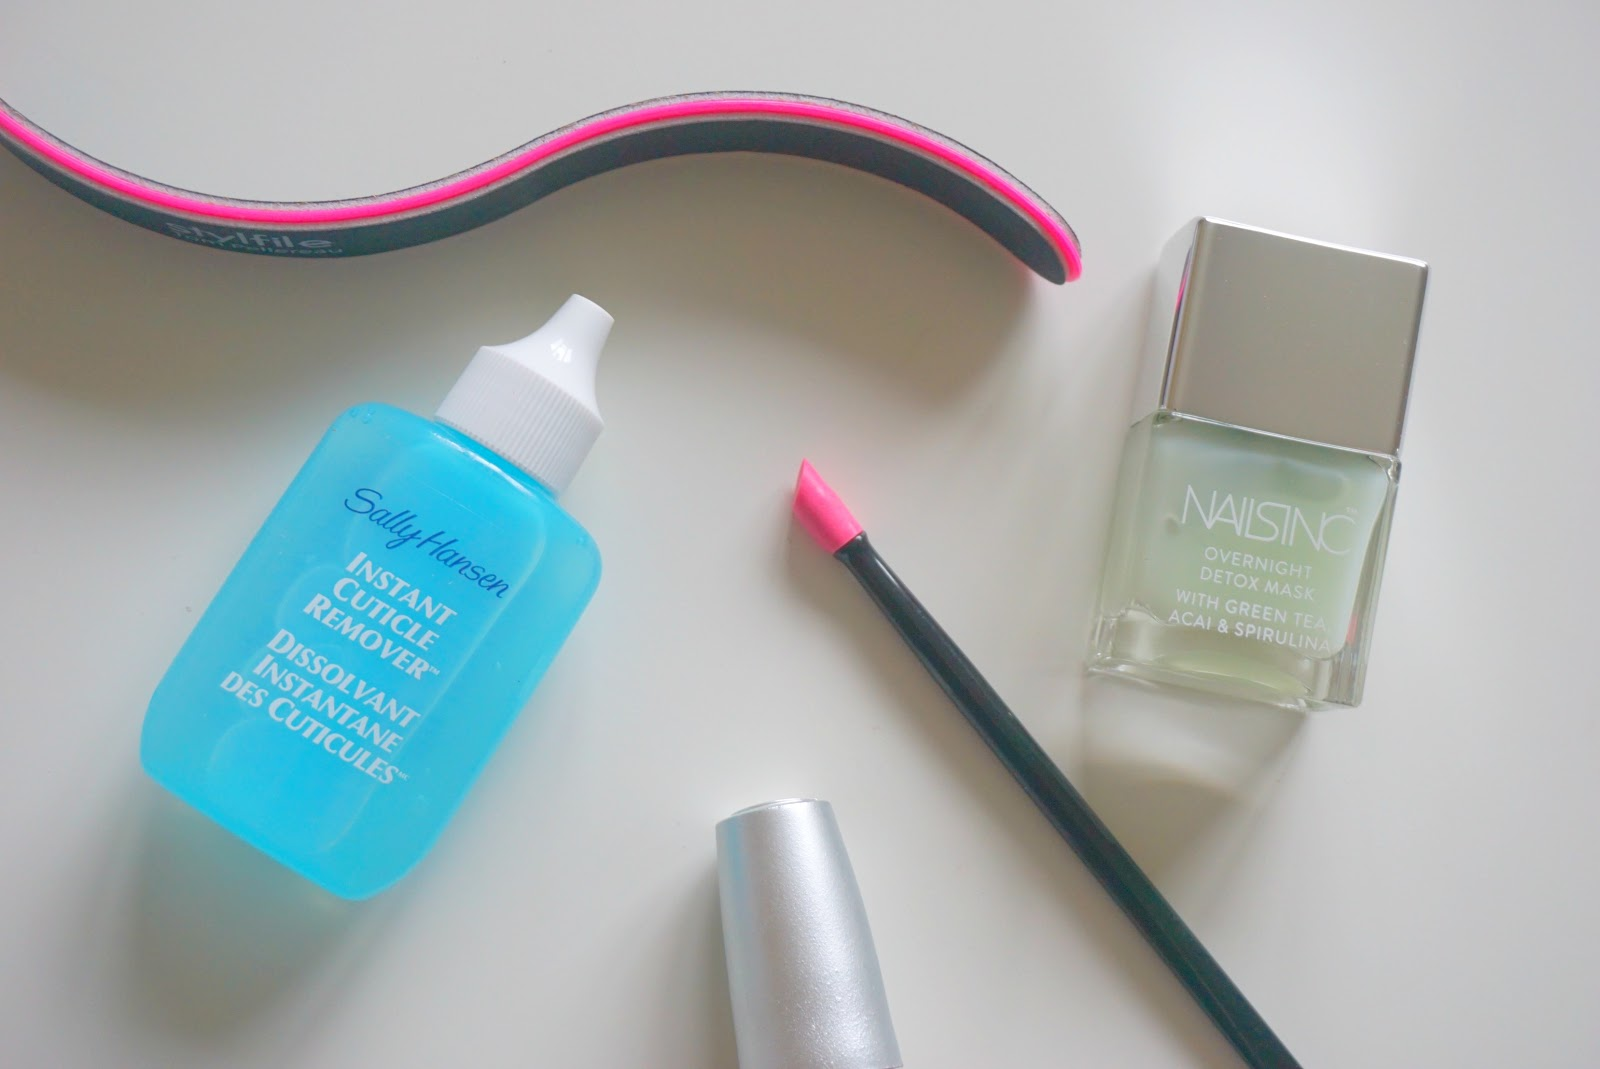 beauty products to condition your nails